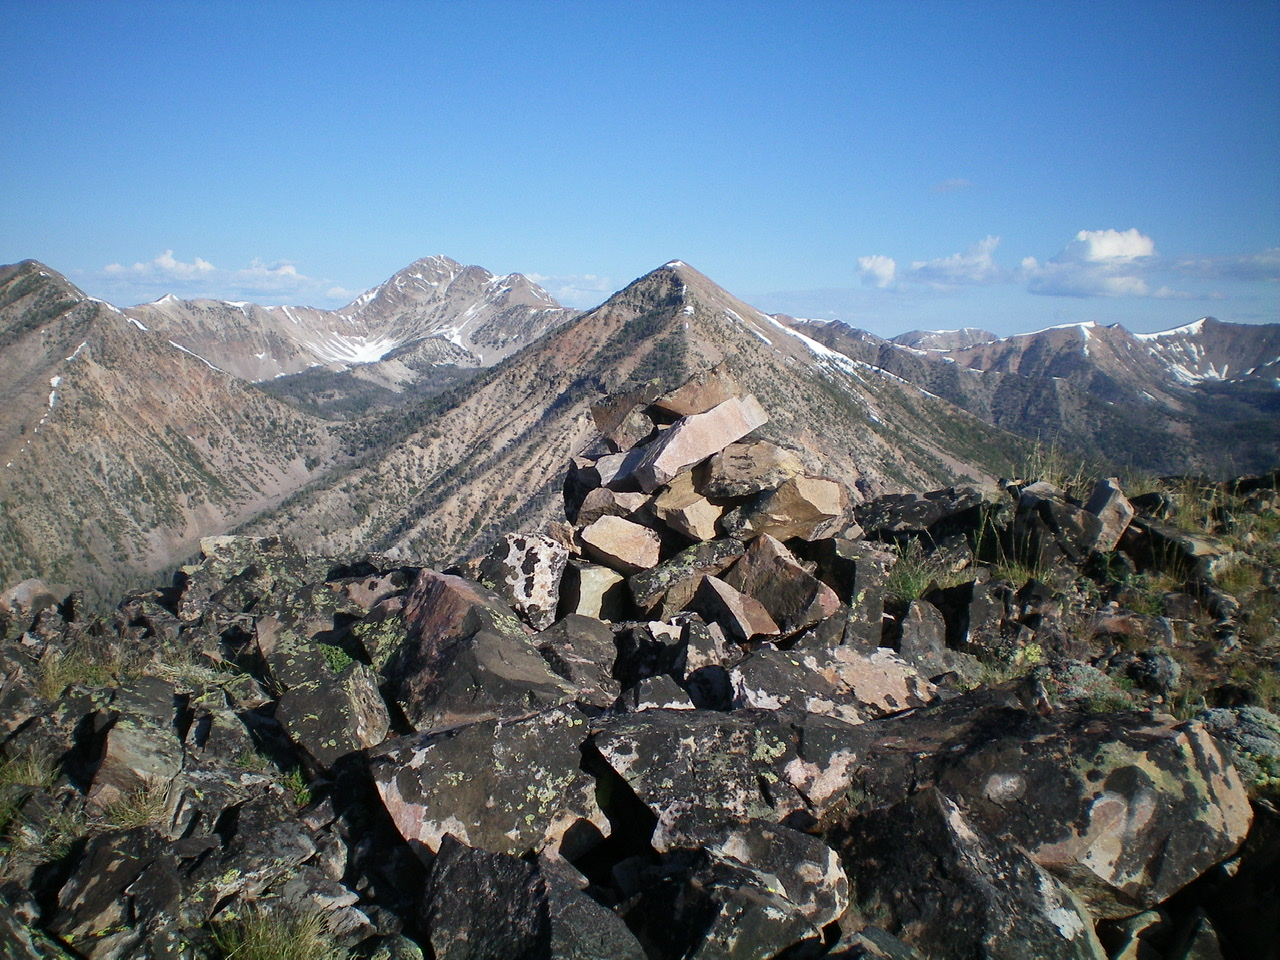 The summit cairn atop Peak 9785 with Peak 10263 in dead-center behind the cairn. Livingston Douglas Photo